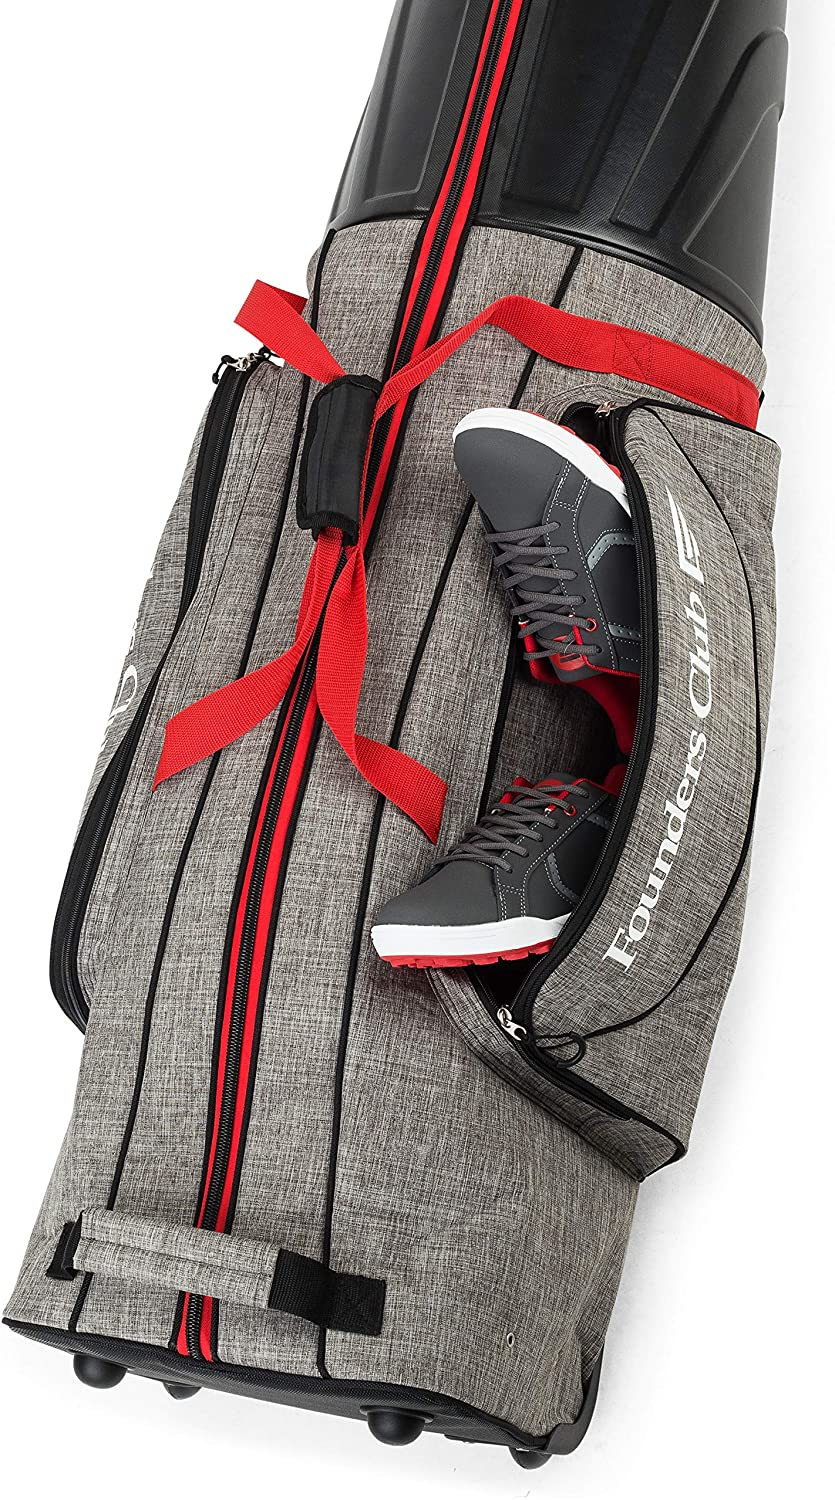 Founders Club Golf Travel Bag Review 1